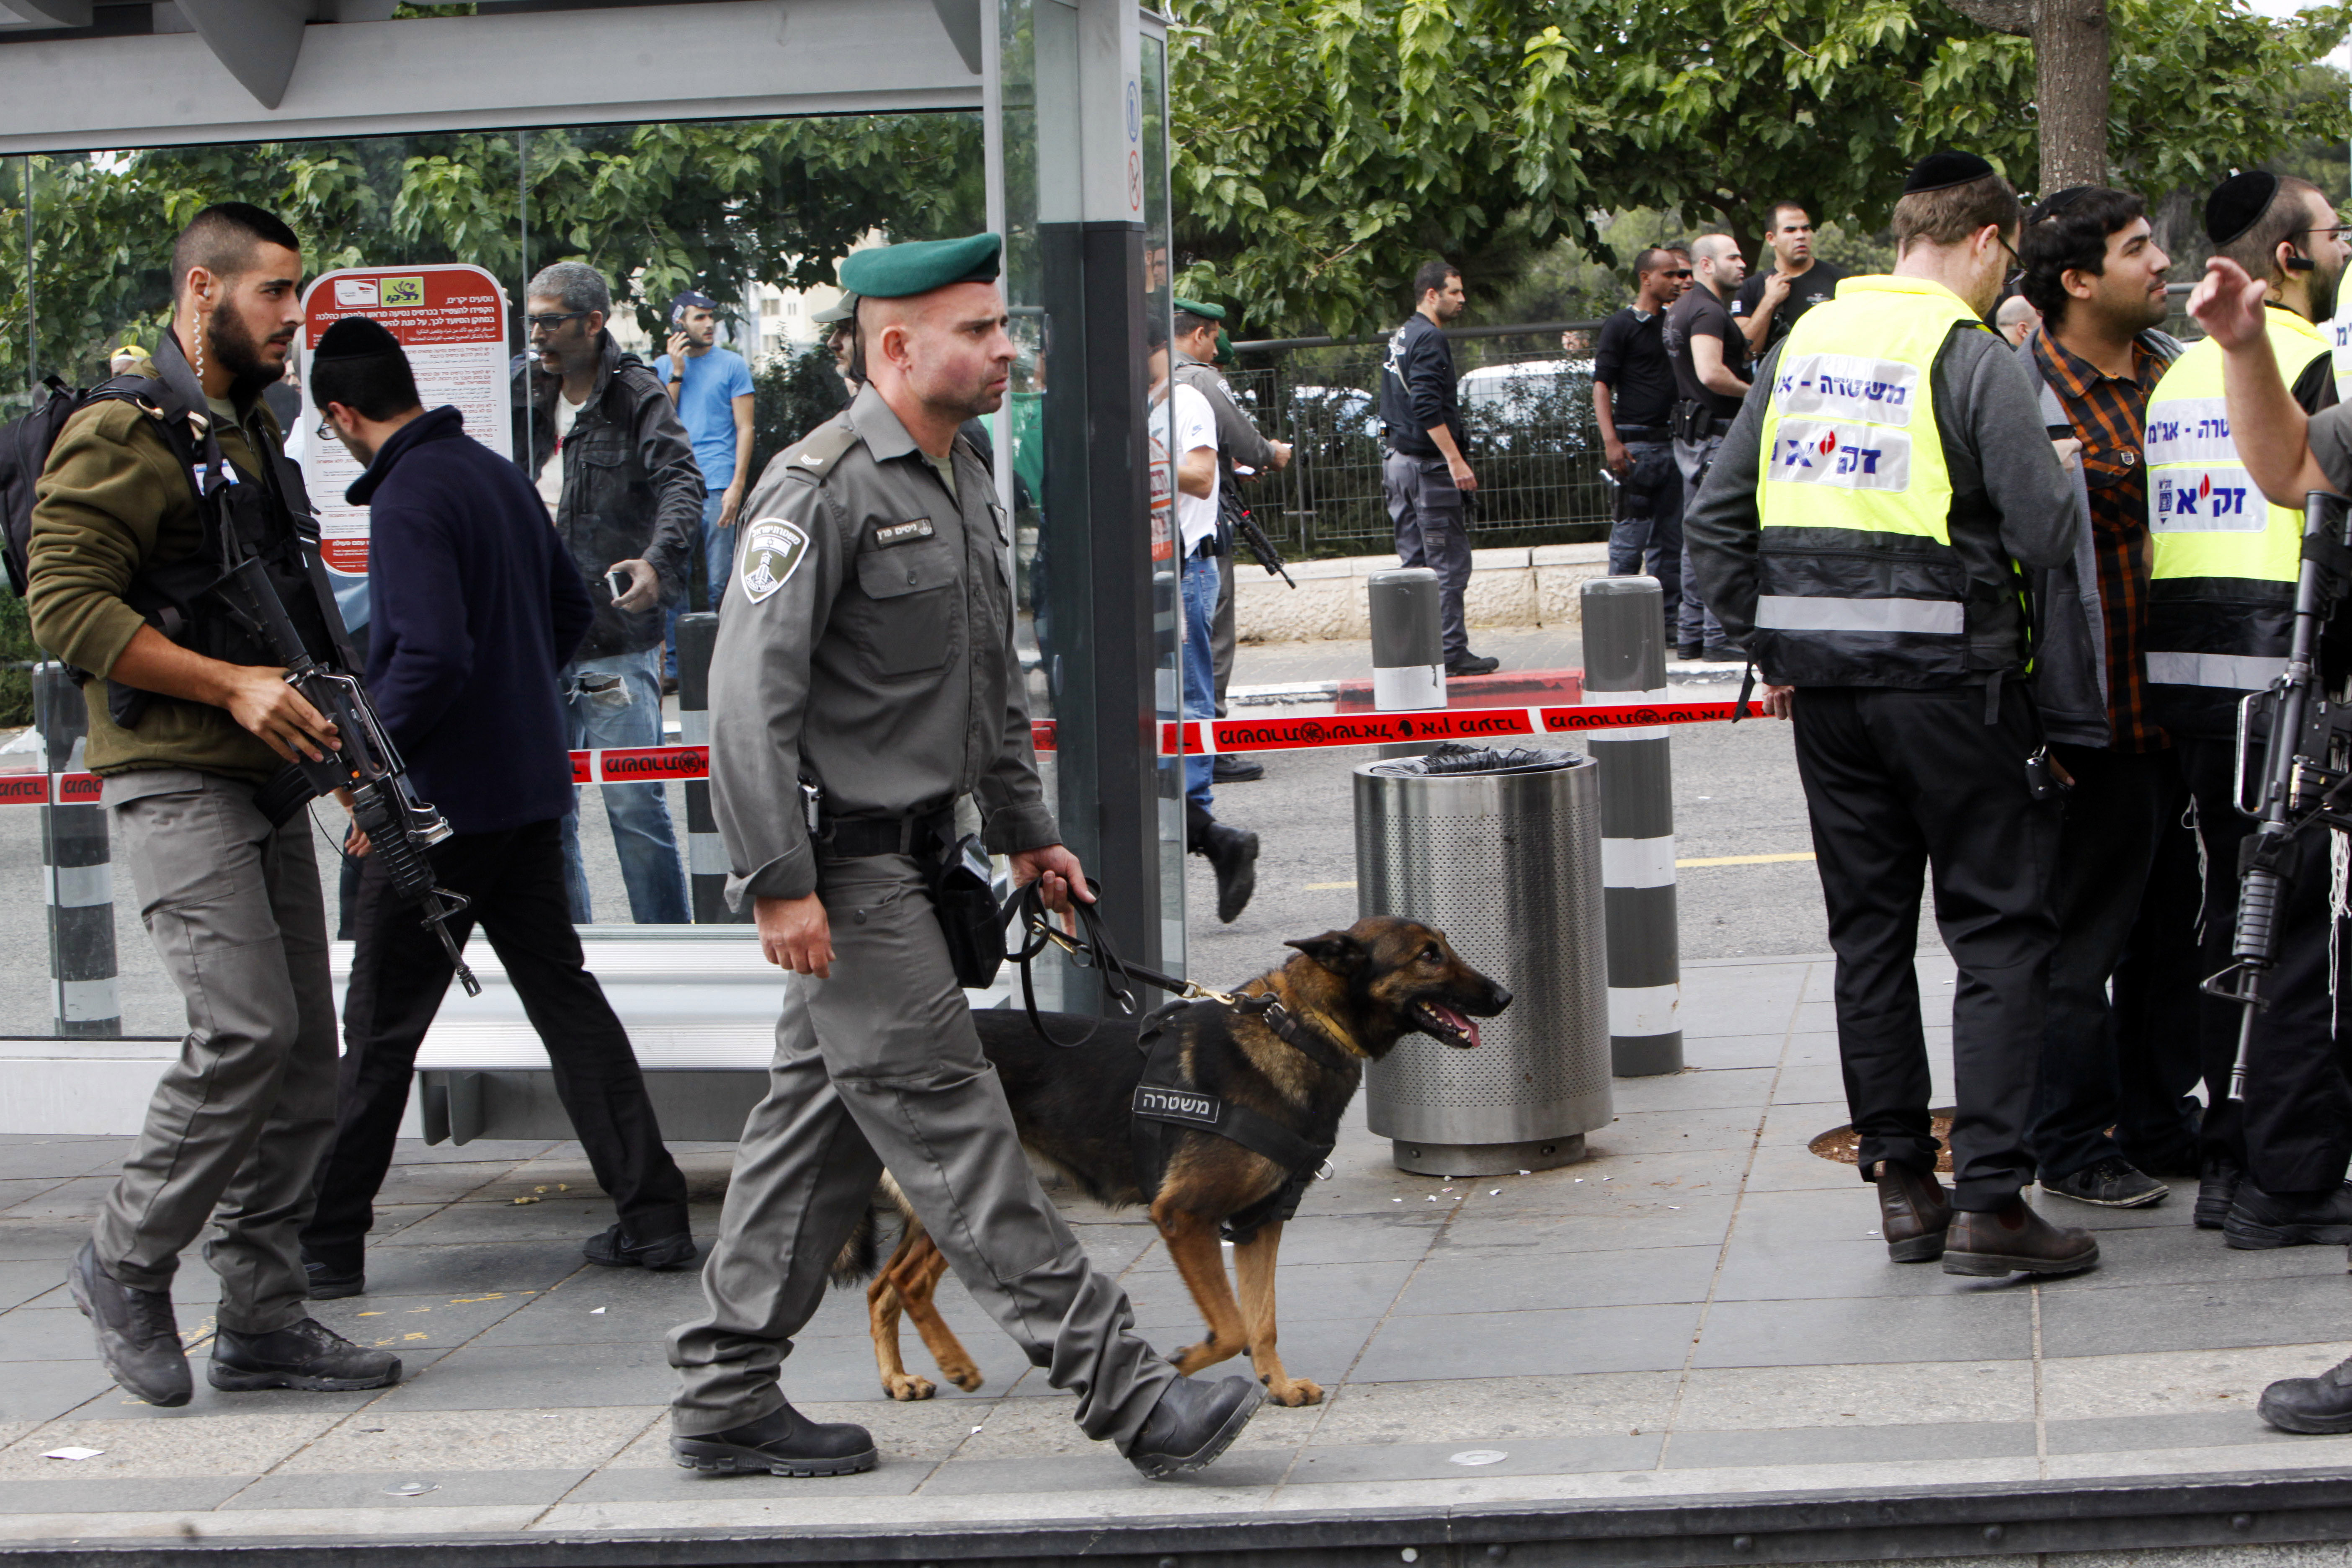 Israeli police secure the scene of a stabbing incident in Jerusalem Oct. 30, 2015.